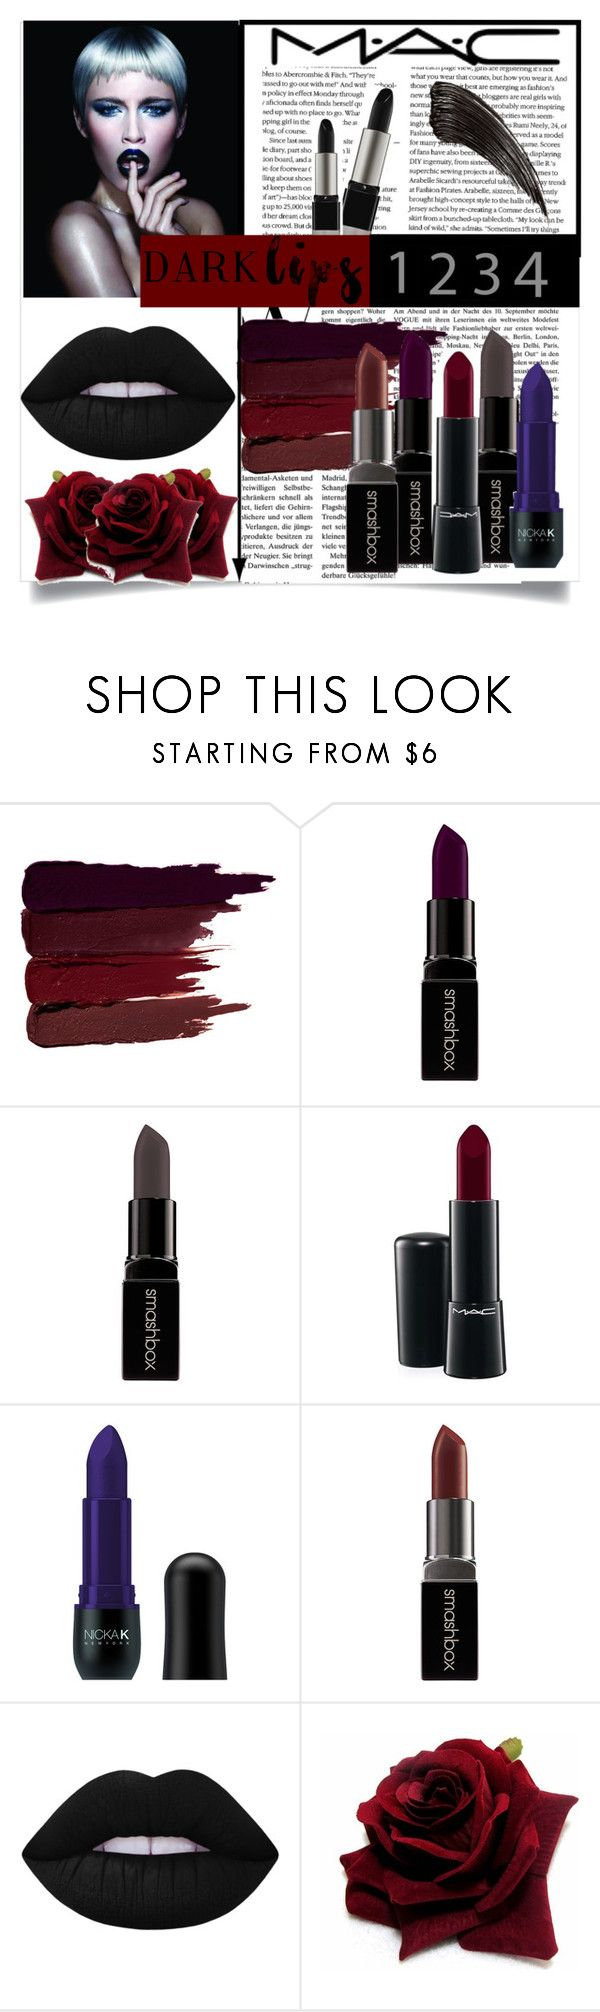 """DARK LIPS"" by gaellerached ❤ liked on Polyvore featuring beauty, Wella, MAC Cosmetics, Serge Lutens, Smashbox, Nicka K, Lime Crime and darklips"